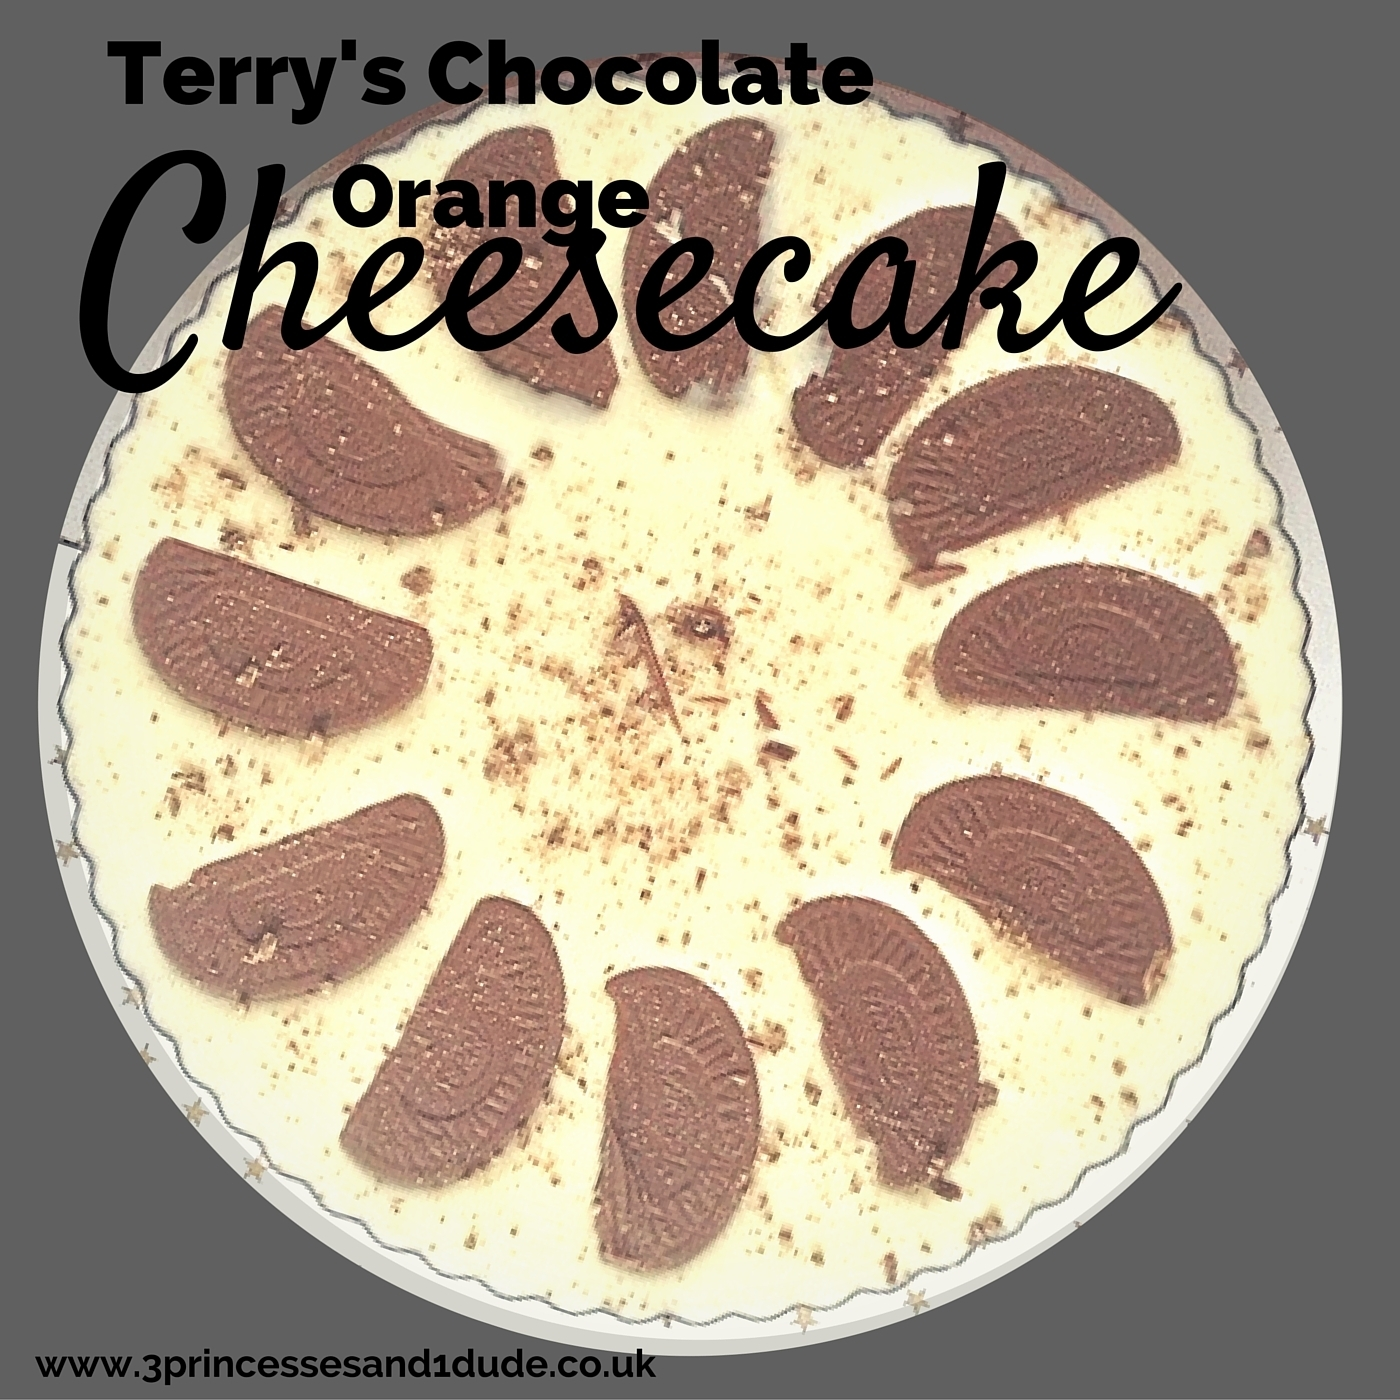 Countdown To Christmas. Terry's Chocolate Orange Cheesecake